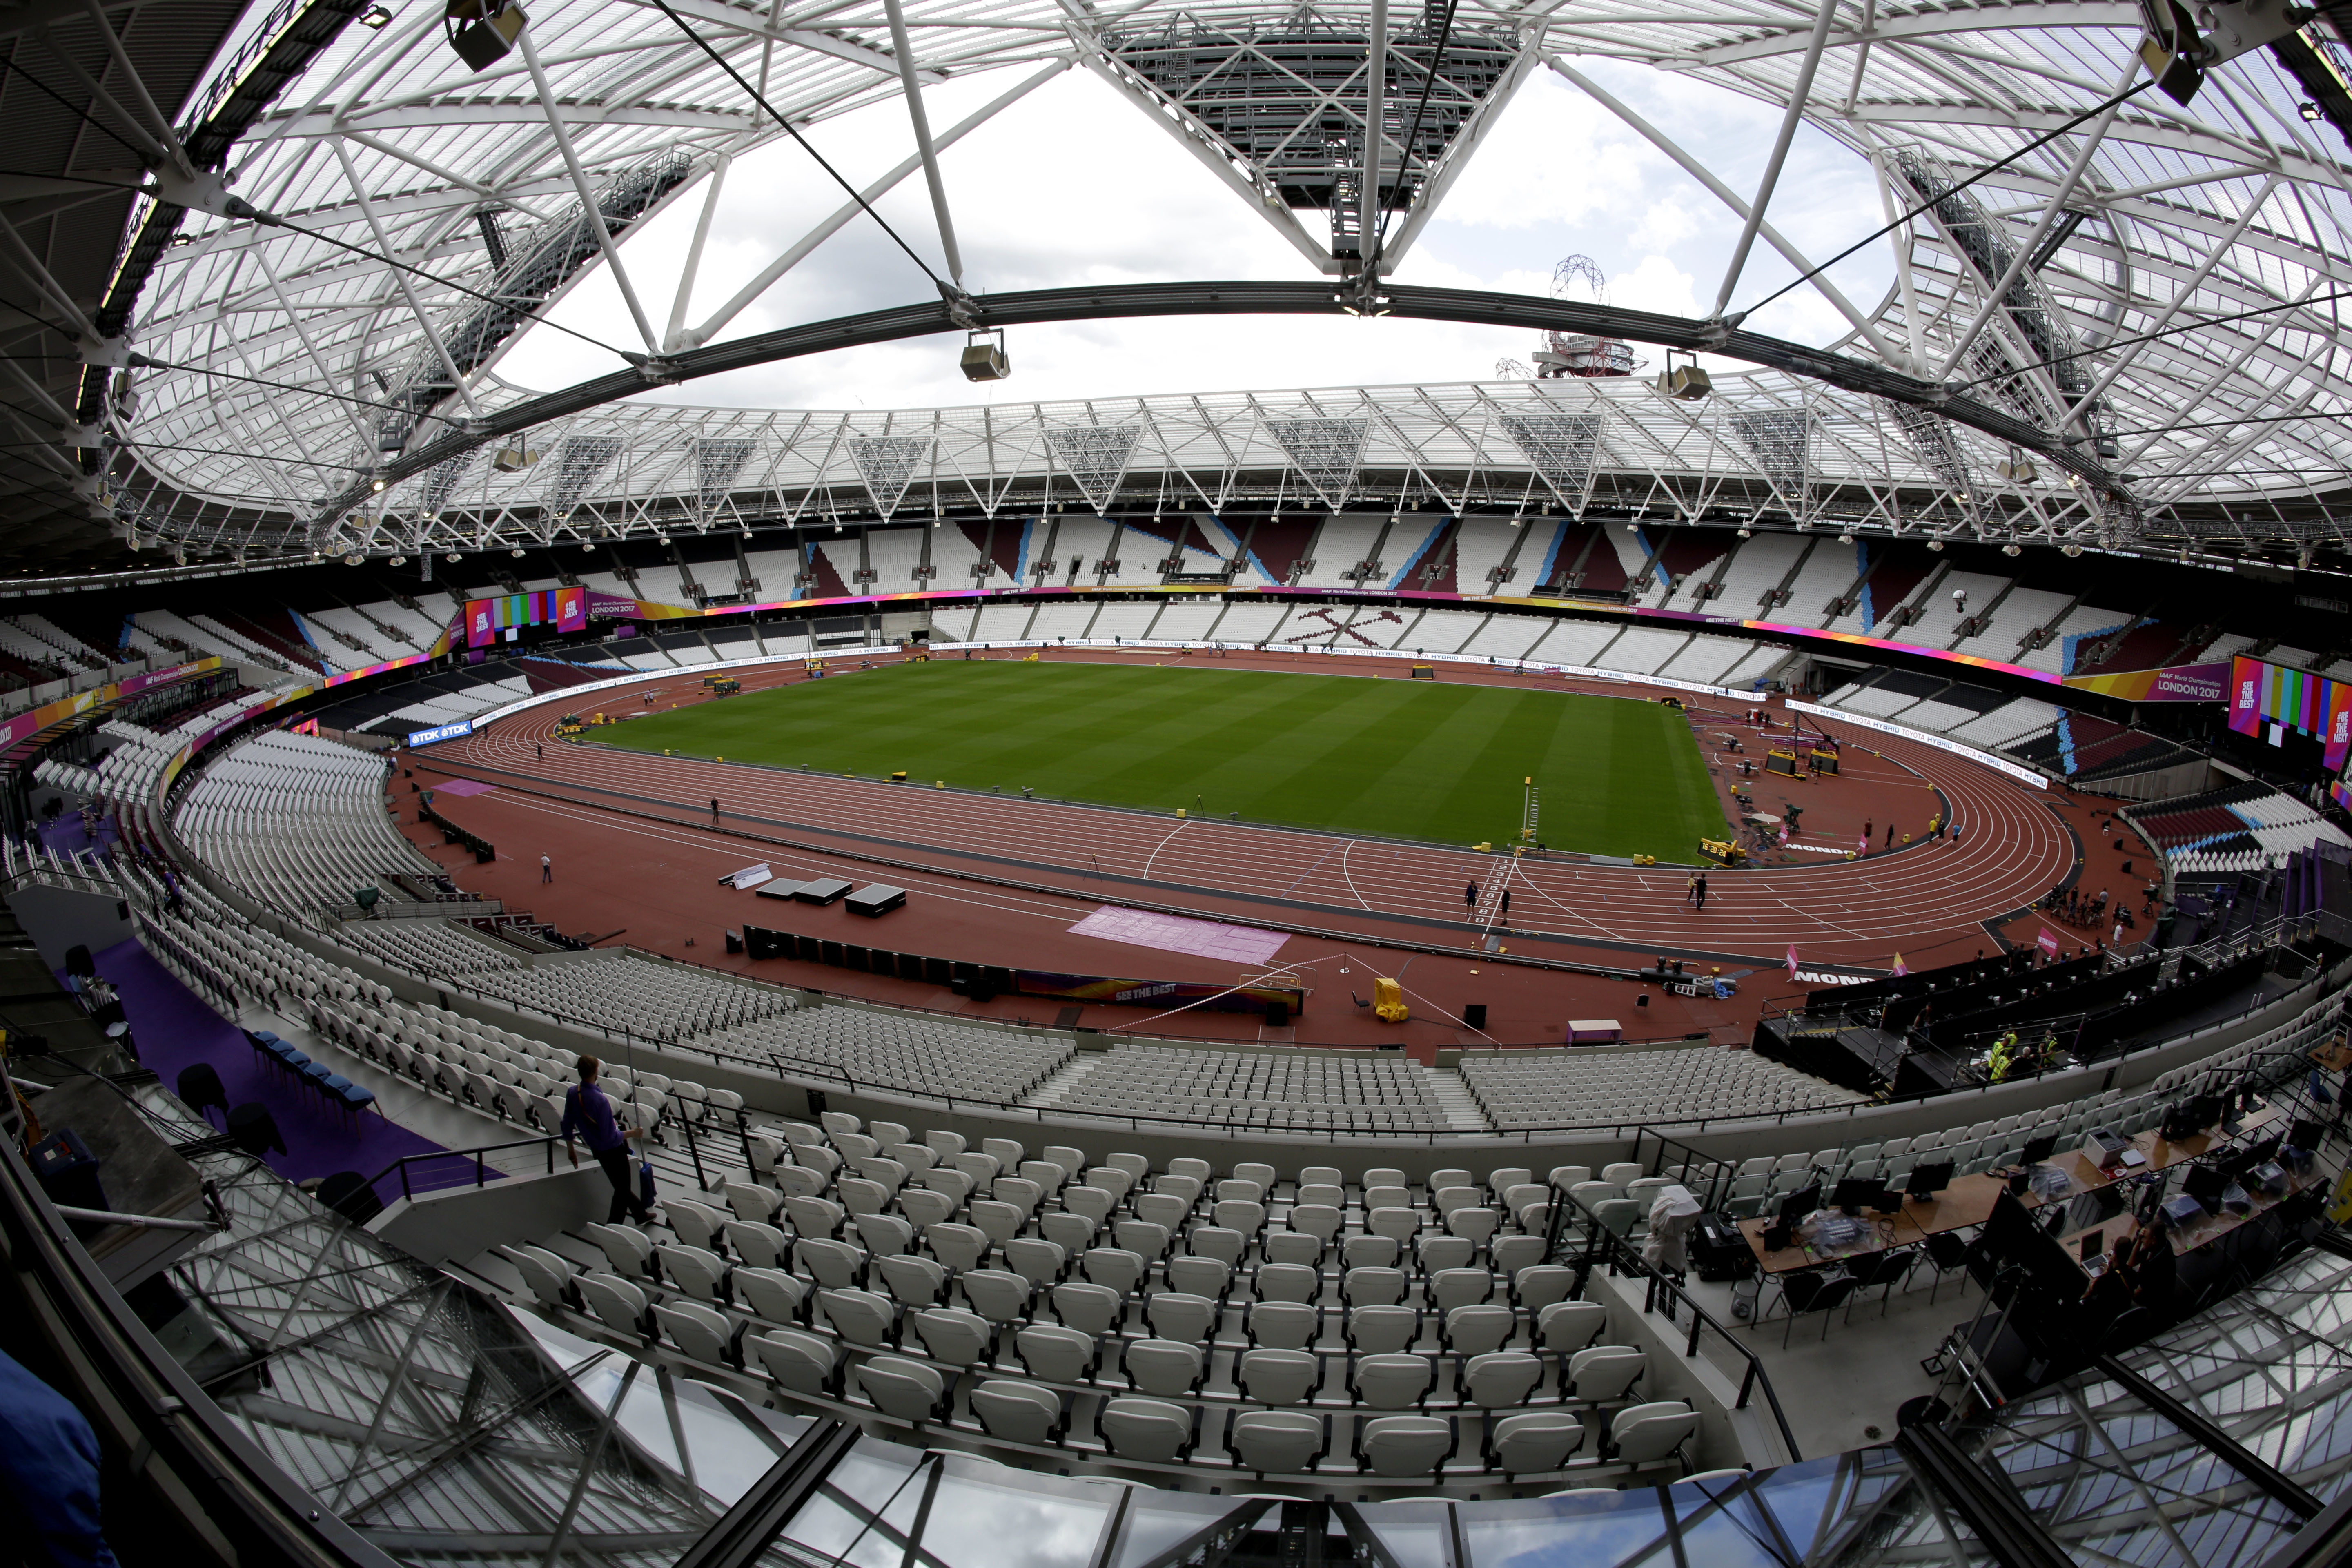 Workers continue setup preparations ahead of the start of the World Athletics Championships at the London Stadium, in the Queen Elizabeth Olympic Park in London, Tuesday, Aug. 1, 2017. The championships begin on Friday.(AP Photo/Matt Dunham)